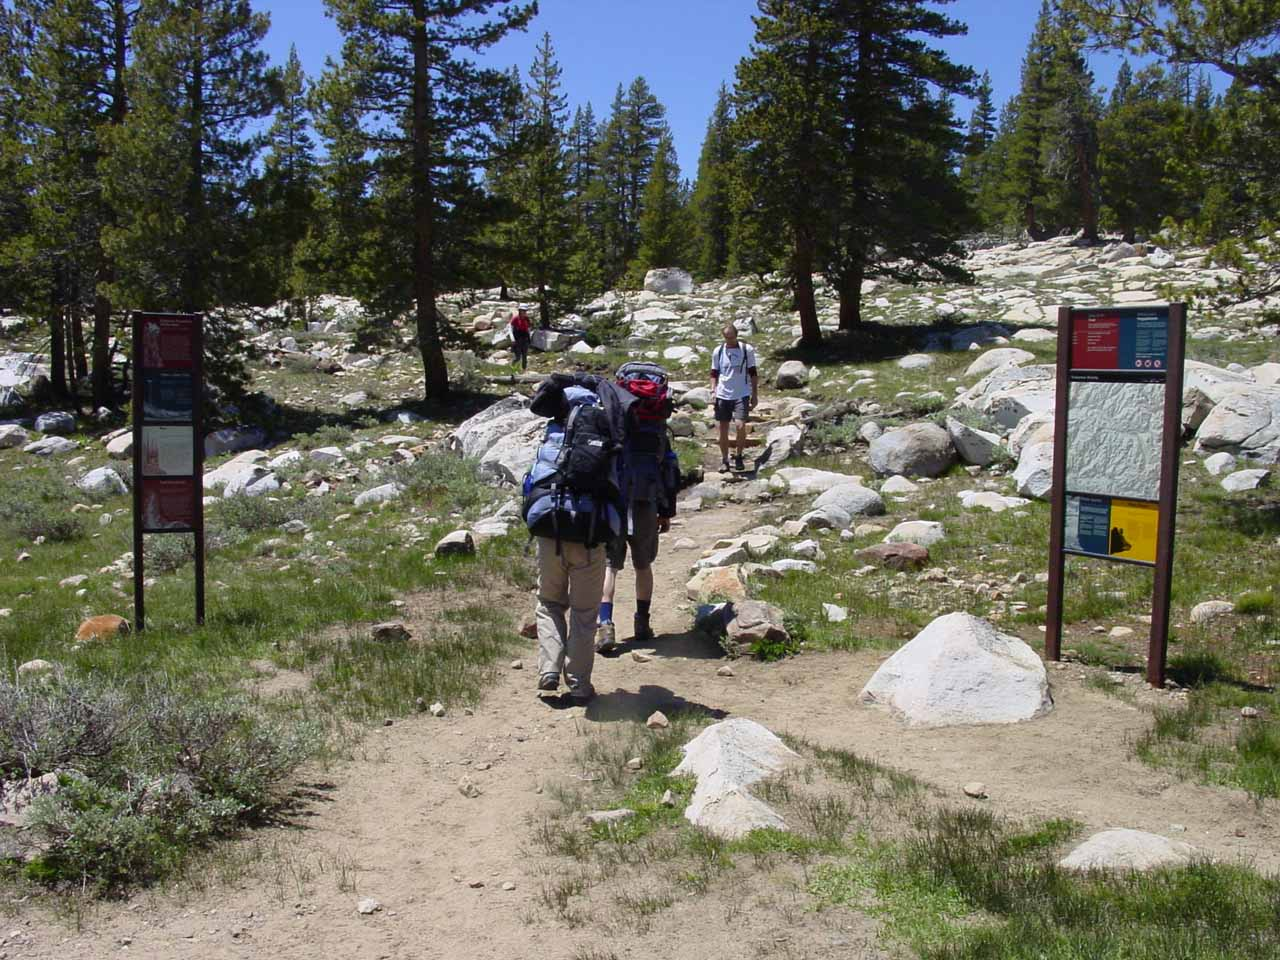 Now on the formal trail beyond the network of trails near the Soda Springs and Parson's Lodge area